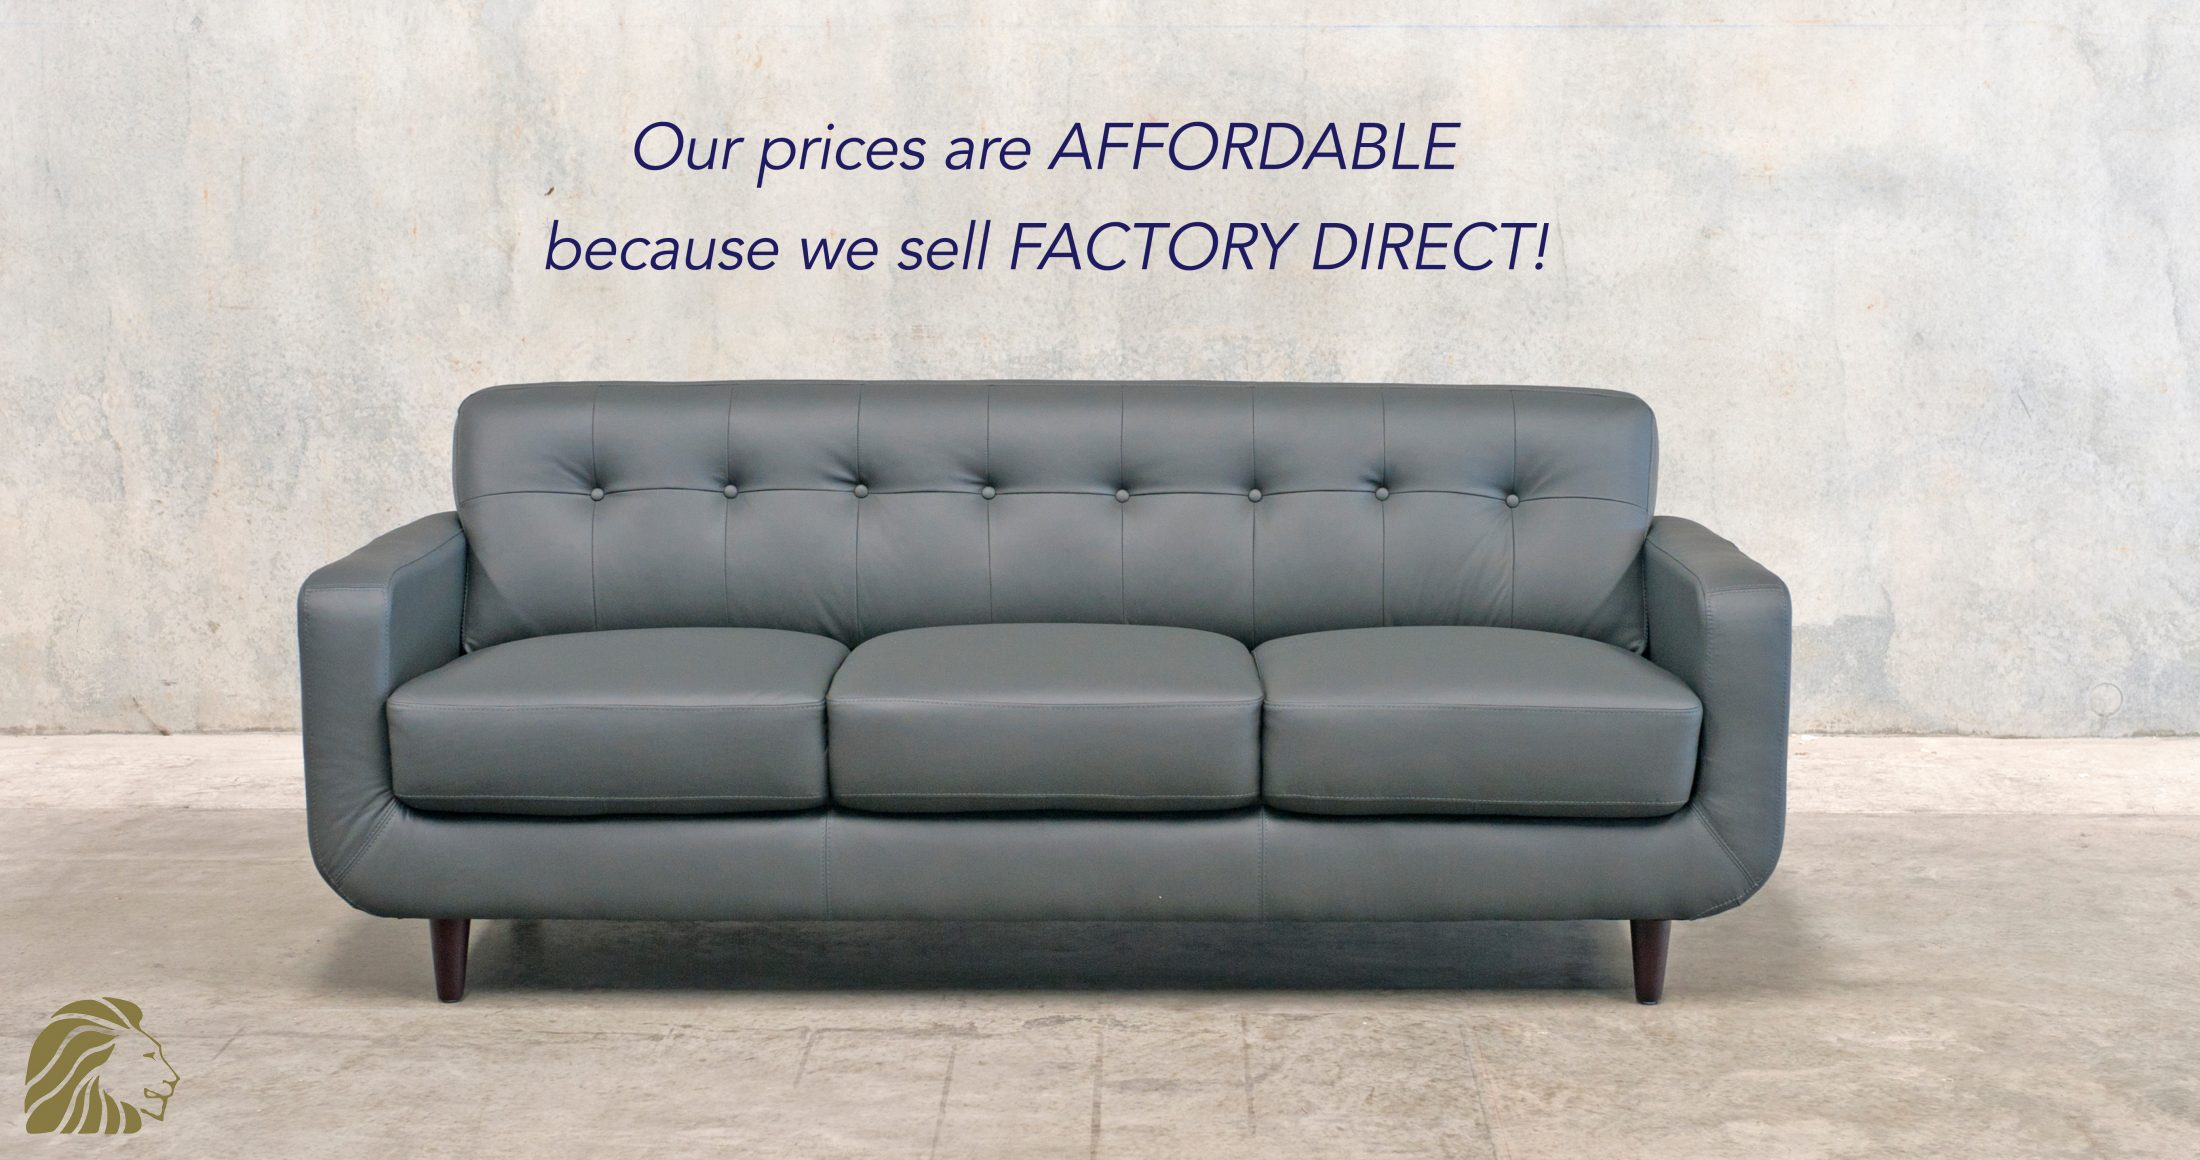 Our prices are affordable because we sell factory direct!